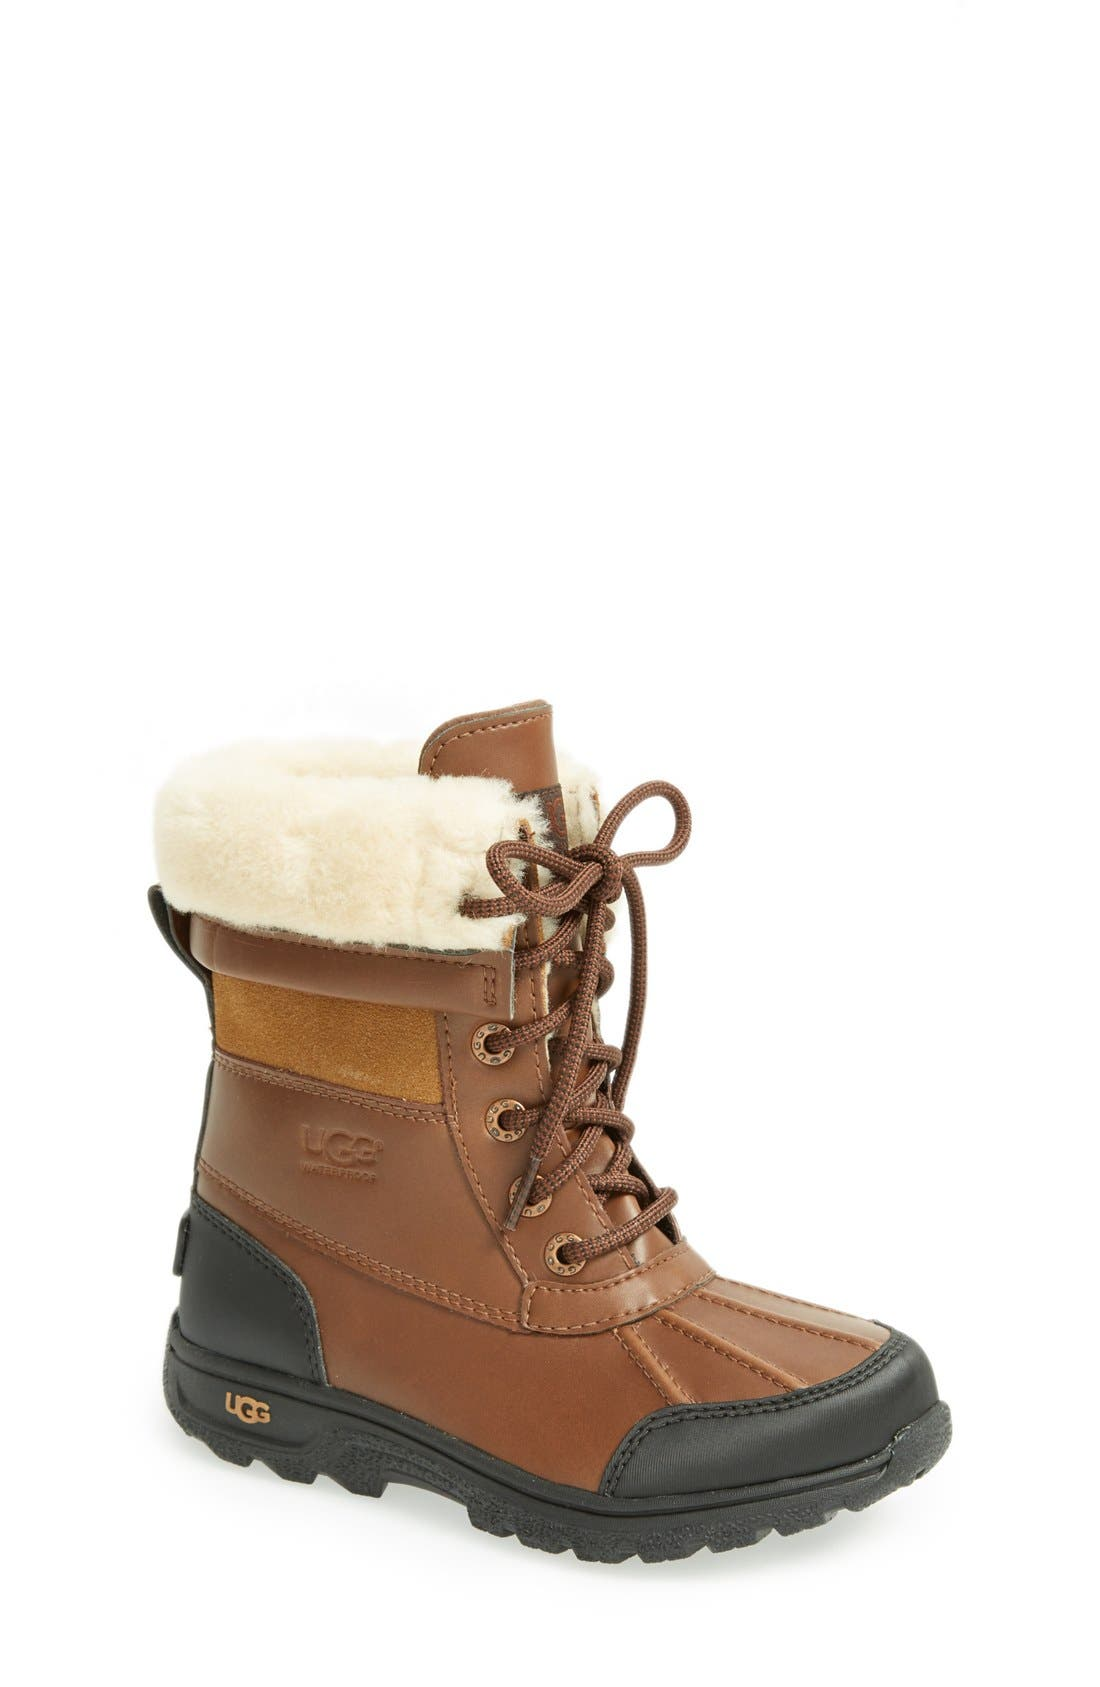 'Butte II' Waterproof Leather Boot,                             Main thumbnail 1, color,                             Worchester